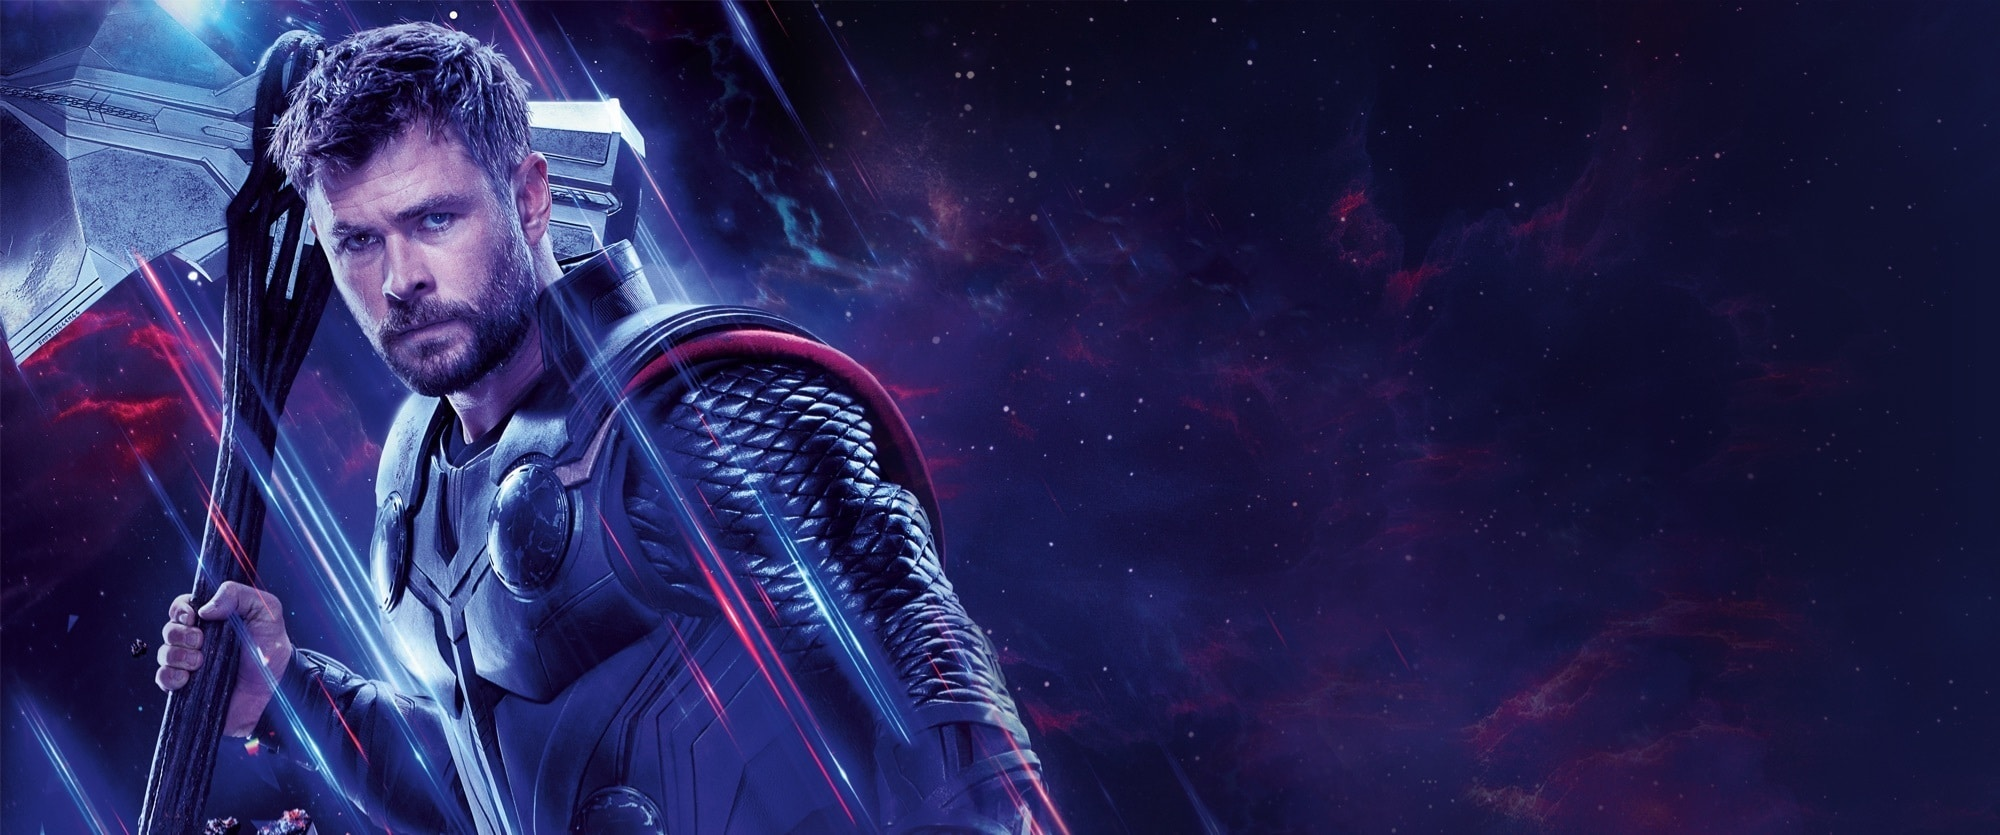 Avengers: Endgame | På bio 24 april